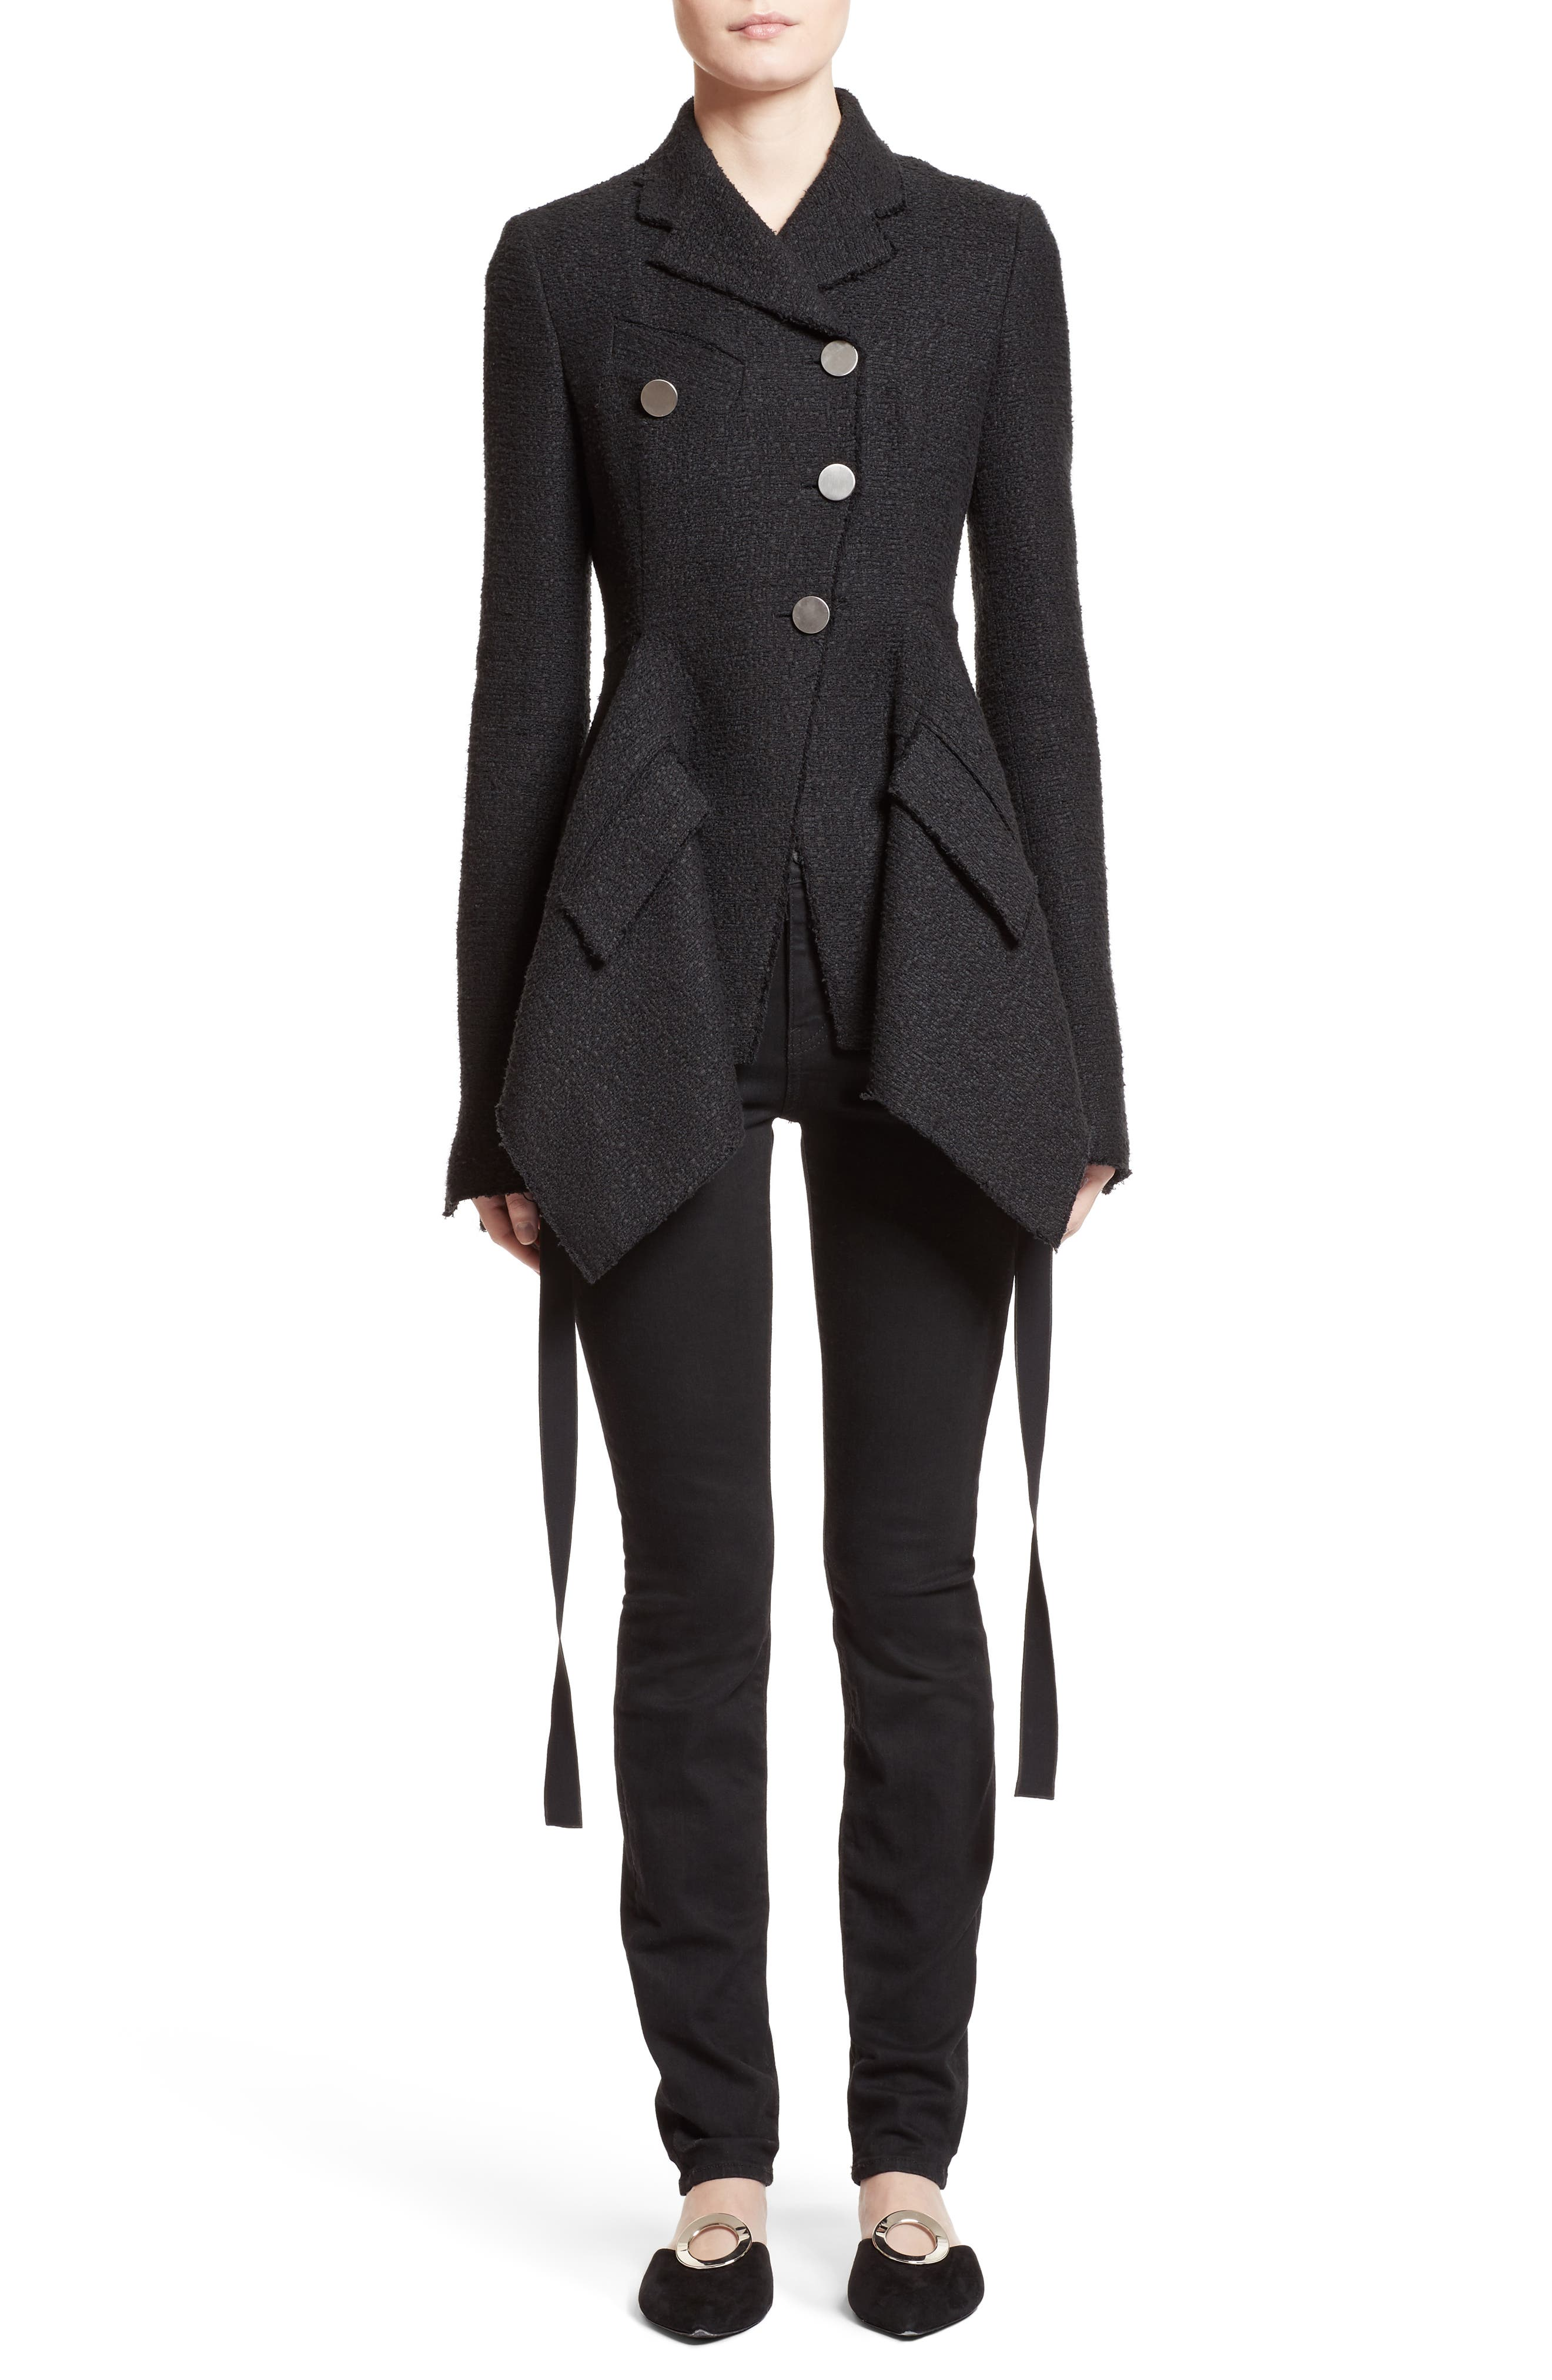 Alternate Image 1 Selected - Proenza Schouler Asymmetrical Tweed Jacket